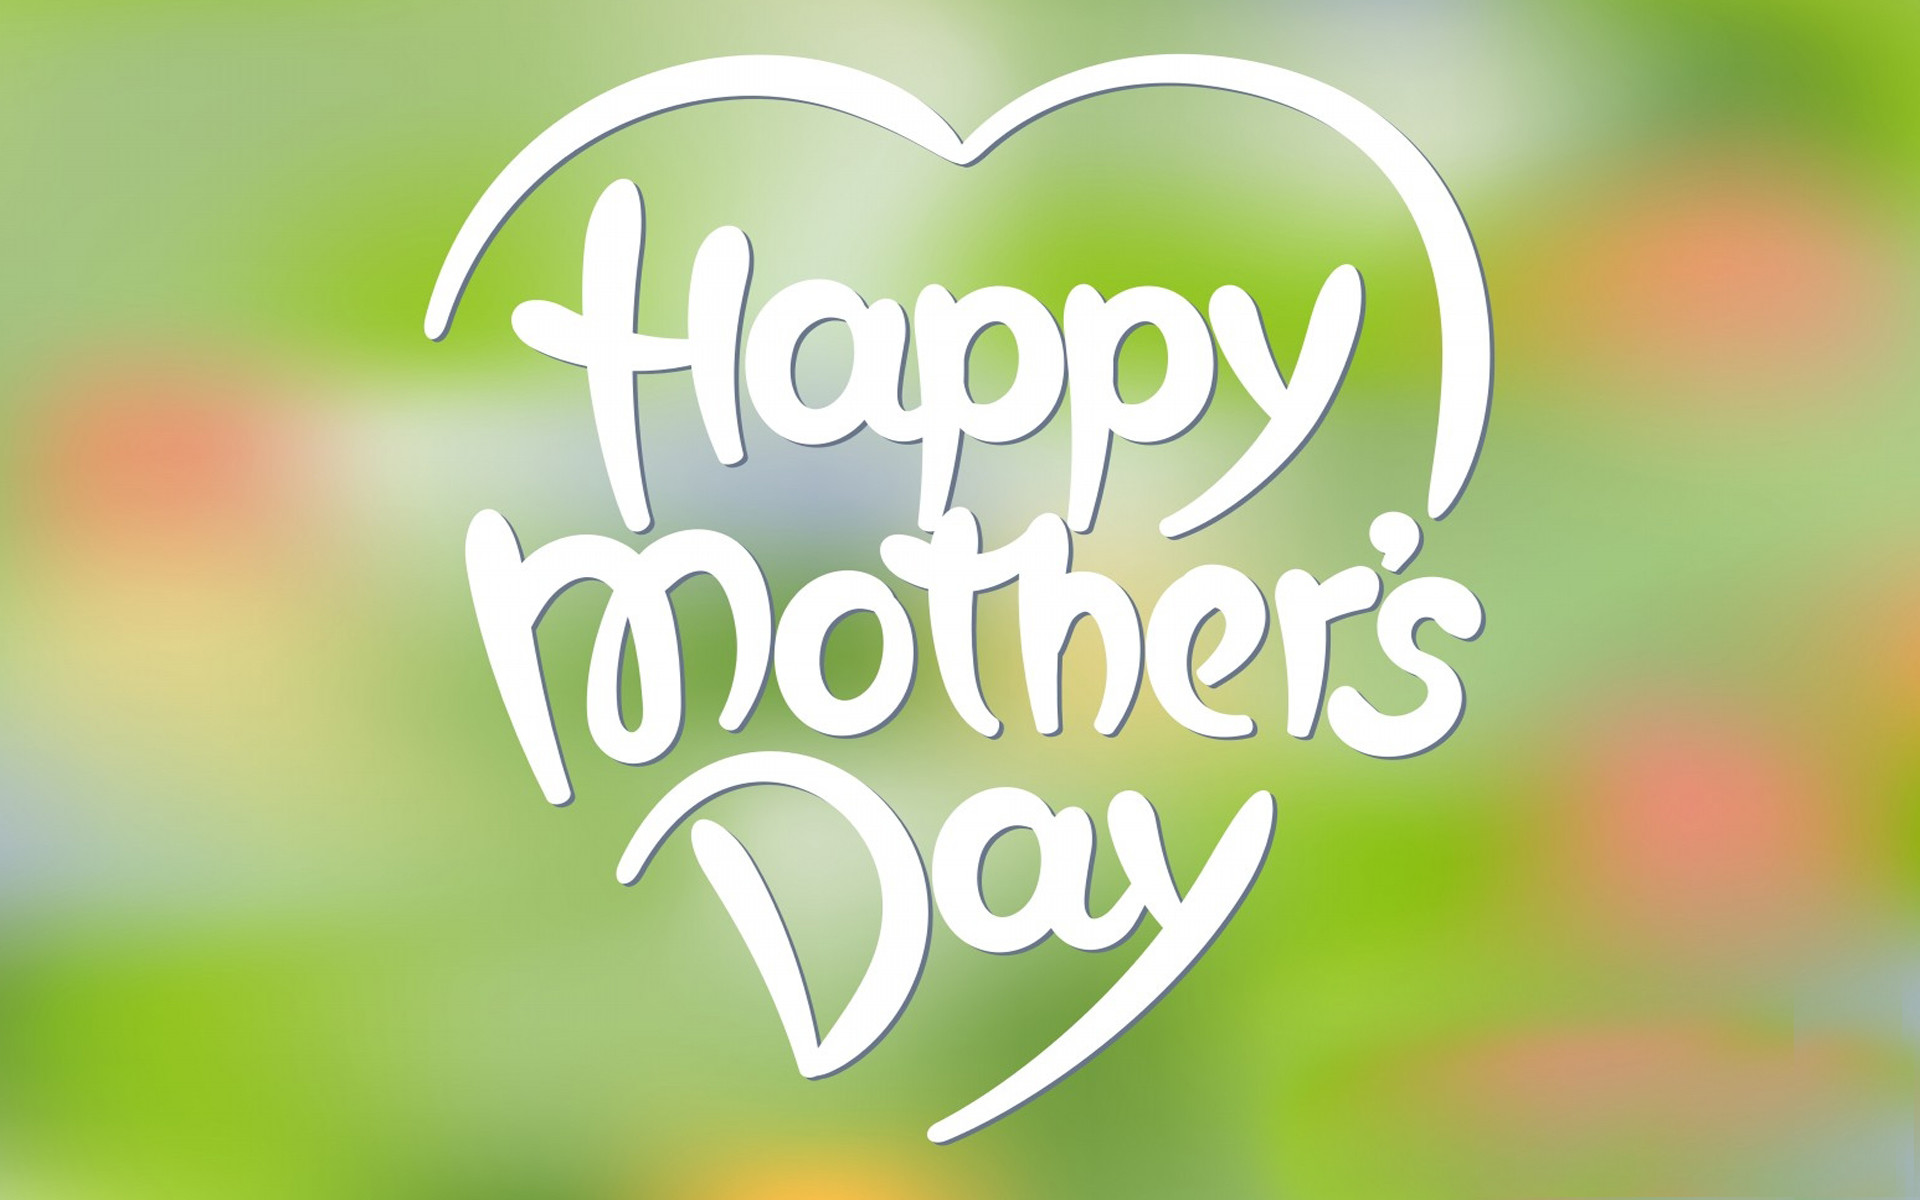 Mother's Day HD Images Download Happy Mother's Day HD Images, Wallpapers  Free Download